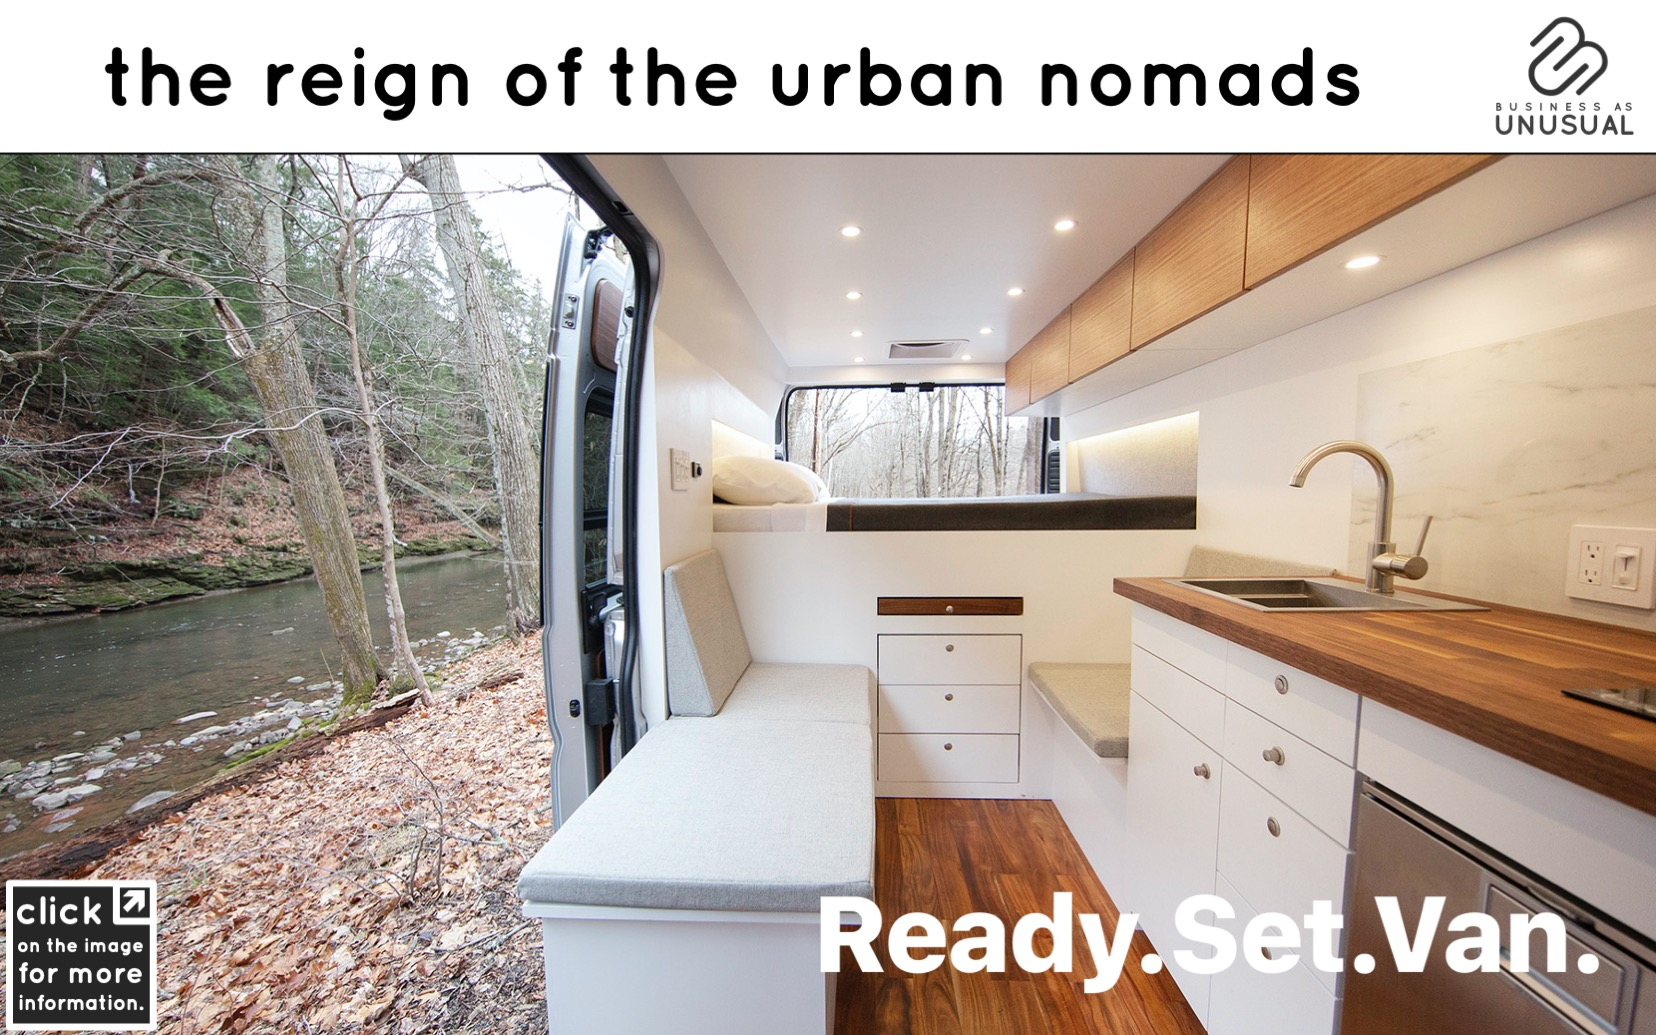 The Reign of the Urban Nomads - Ready Set Van